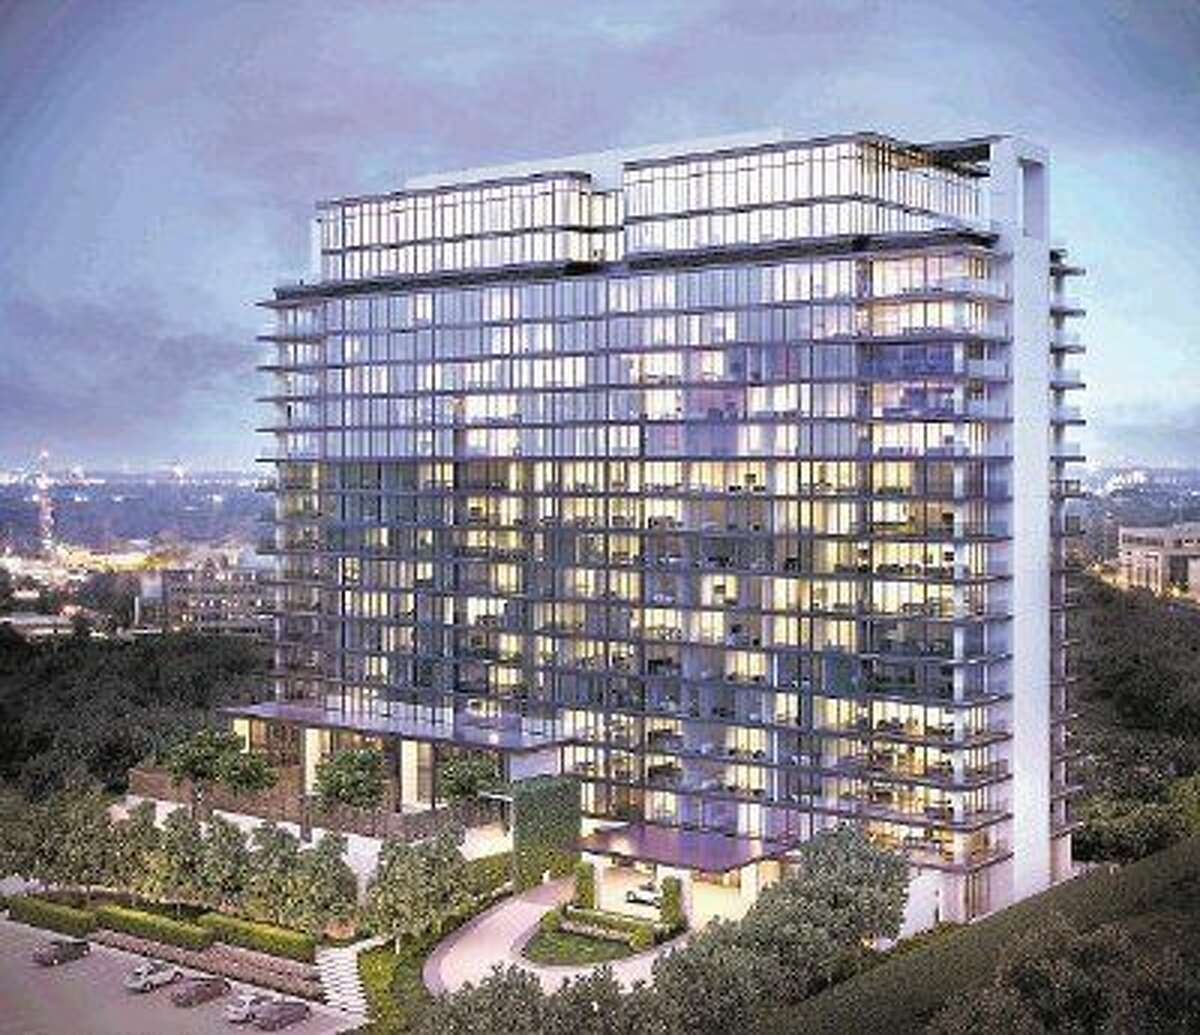 The River Oaks condominiums planned for completion in 2017, is a 250,000 square-foot luxury condominium, located at 3433 Westheimer, between Edloe and Buffalo Speedway, in the heart of River Oaks.